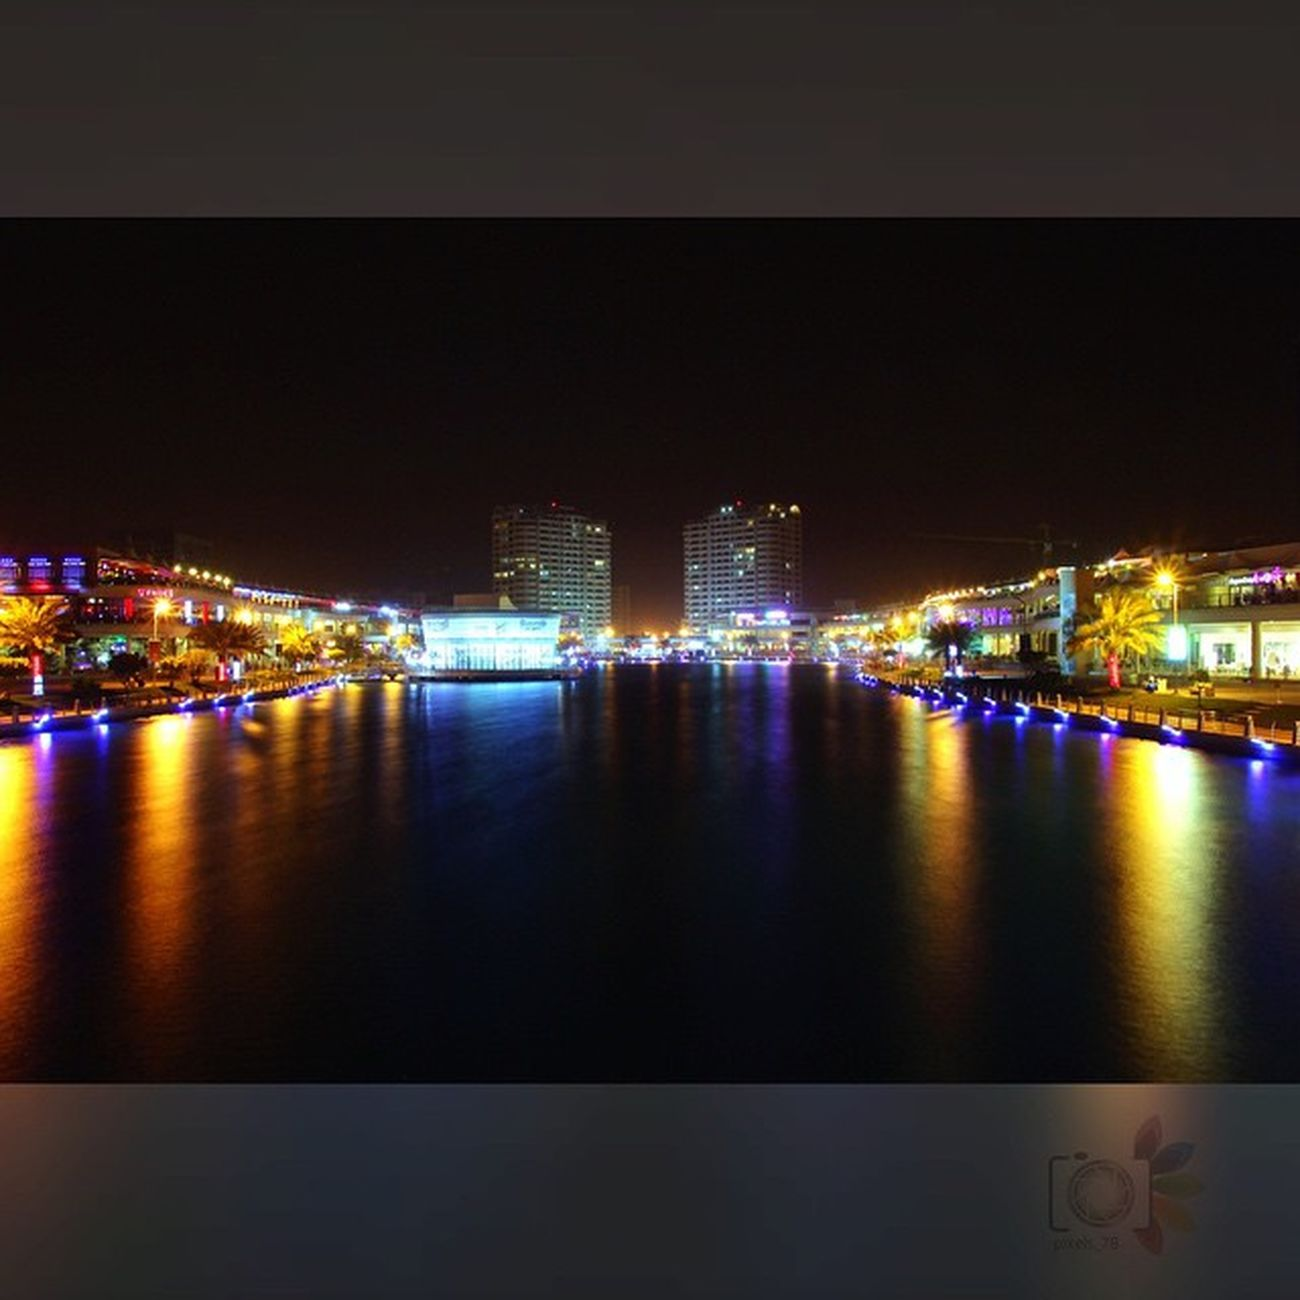 Photography Ios Canon_60_D DSLR Camera_4_sale Bahrain Muharraq East_Riffa Instgram Insatpic Instamood لو سنين عمري تضيع .. والزهور تنسى الربيع .. ما أنساك أبد ..